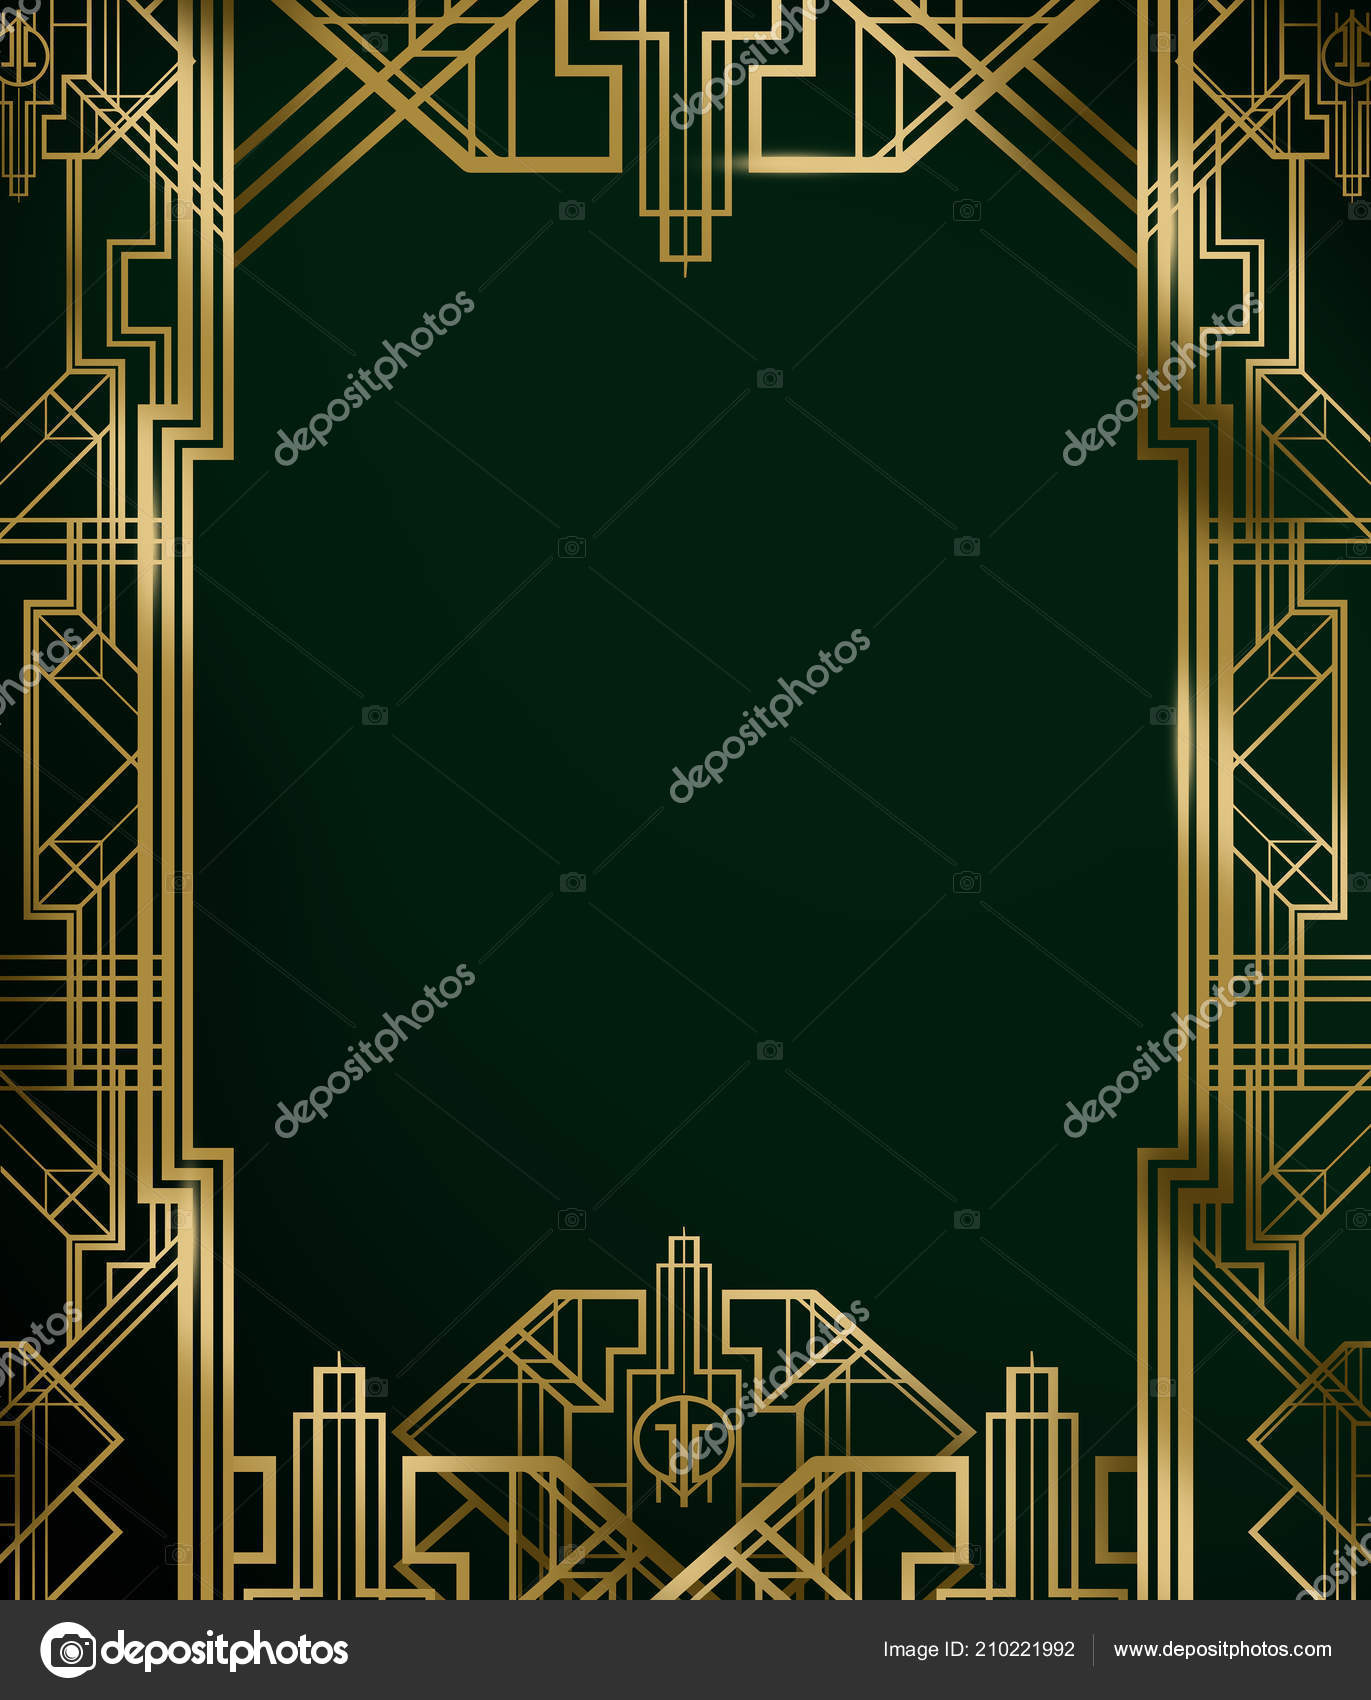 Great Gatsby Art Deco Movie Film Inspired Background Poster Banner